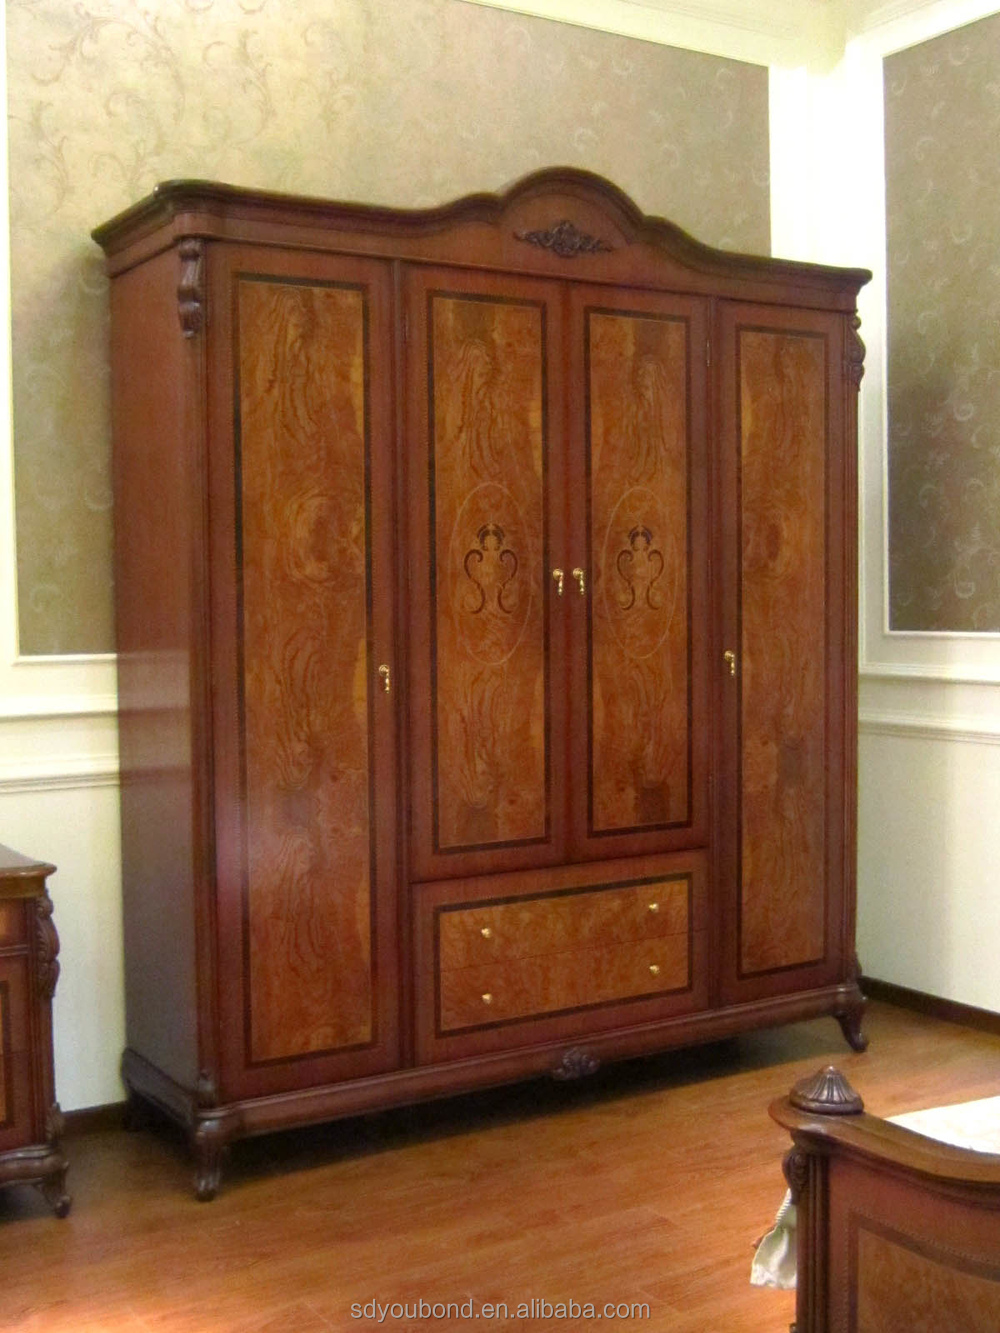 E51 4-door wardrobe.jpg - 0051 American Style Wooden Wardrobe Designs,Antique Wardrobe Cabinet